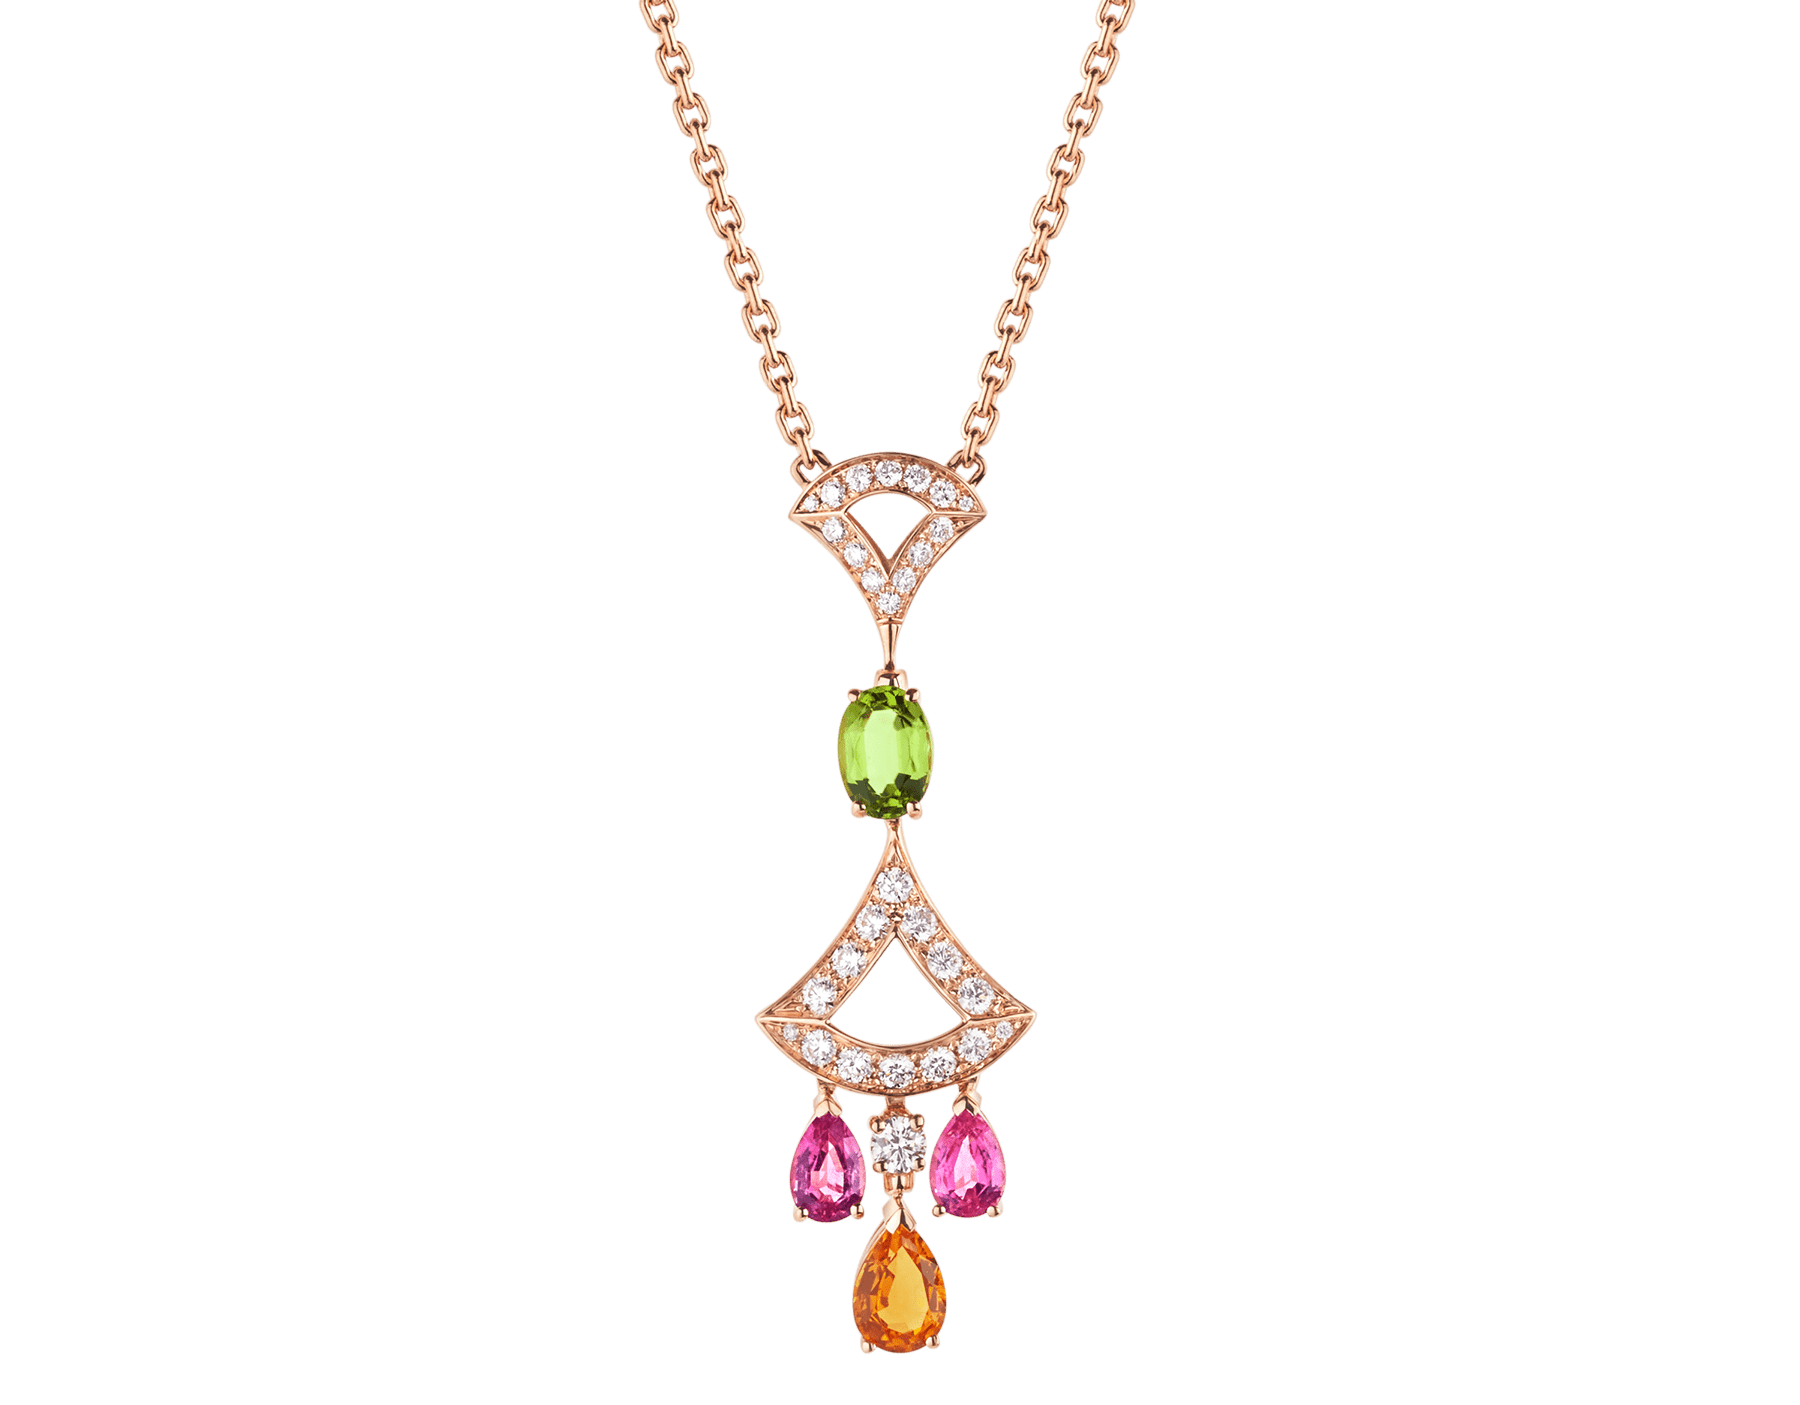 DIVAS' DREAM 18 kt rose gold necklace set with coloured gemstones, a brilliant-cut diamond and pavé diamonds. 355613 image 1